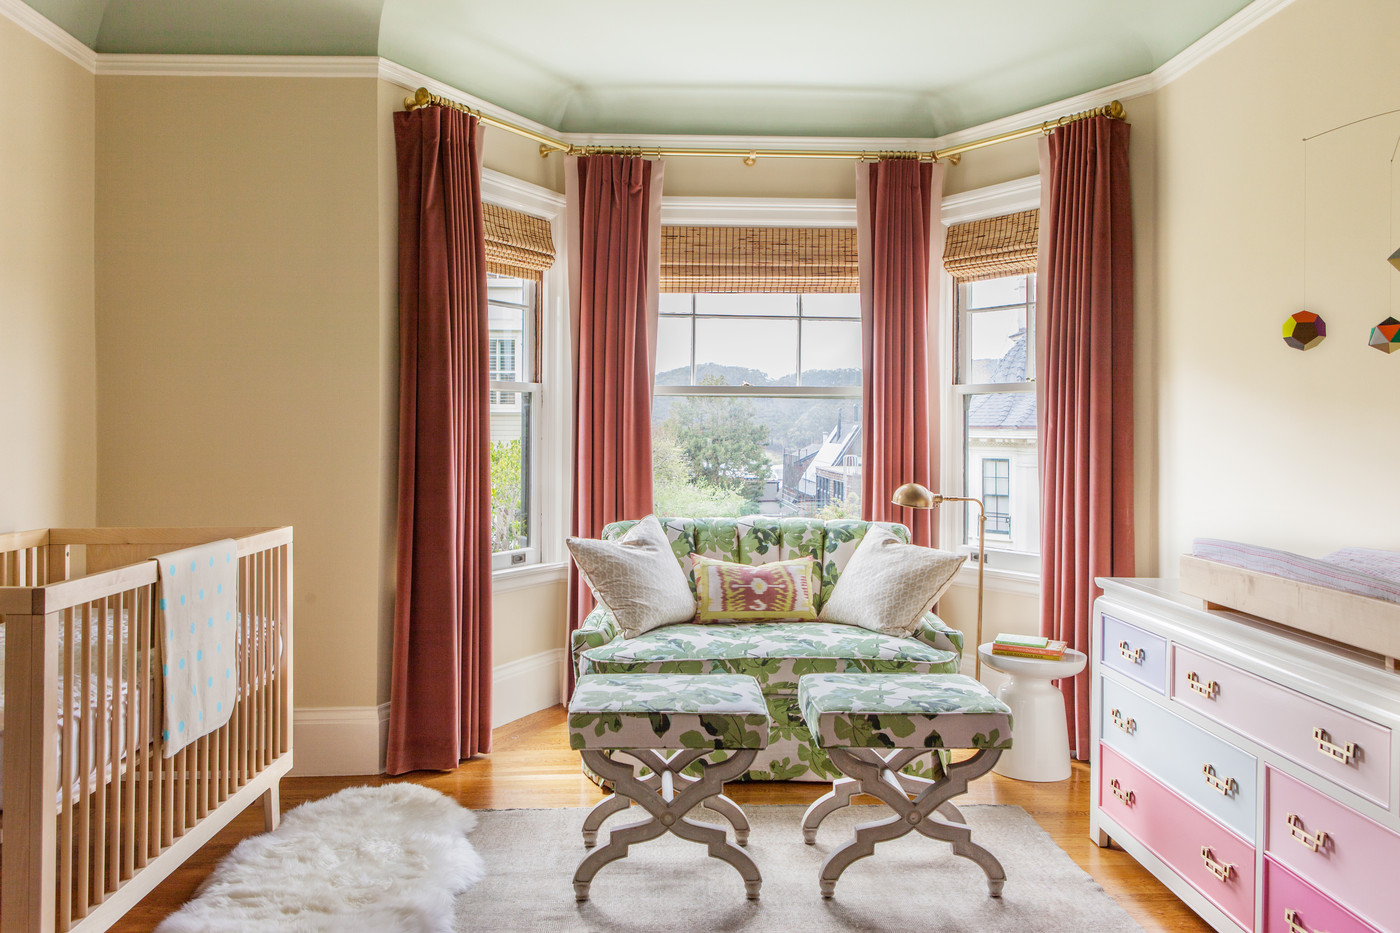 As a soft landing 15 ways to use an ikea sheepskin for Drapes over crib